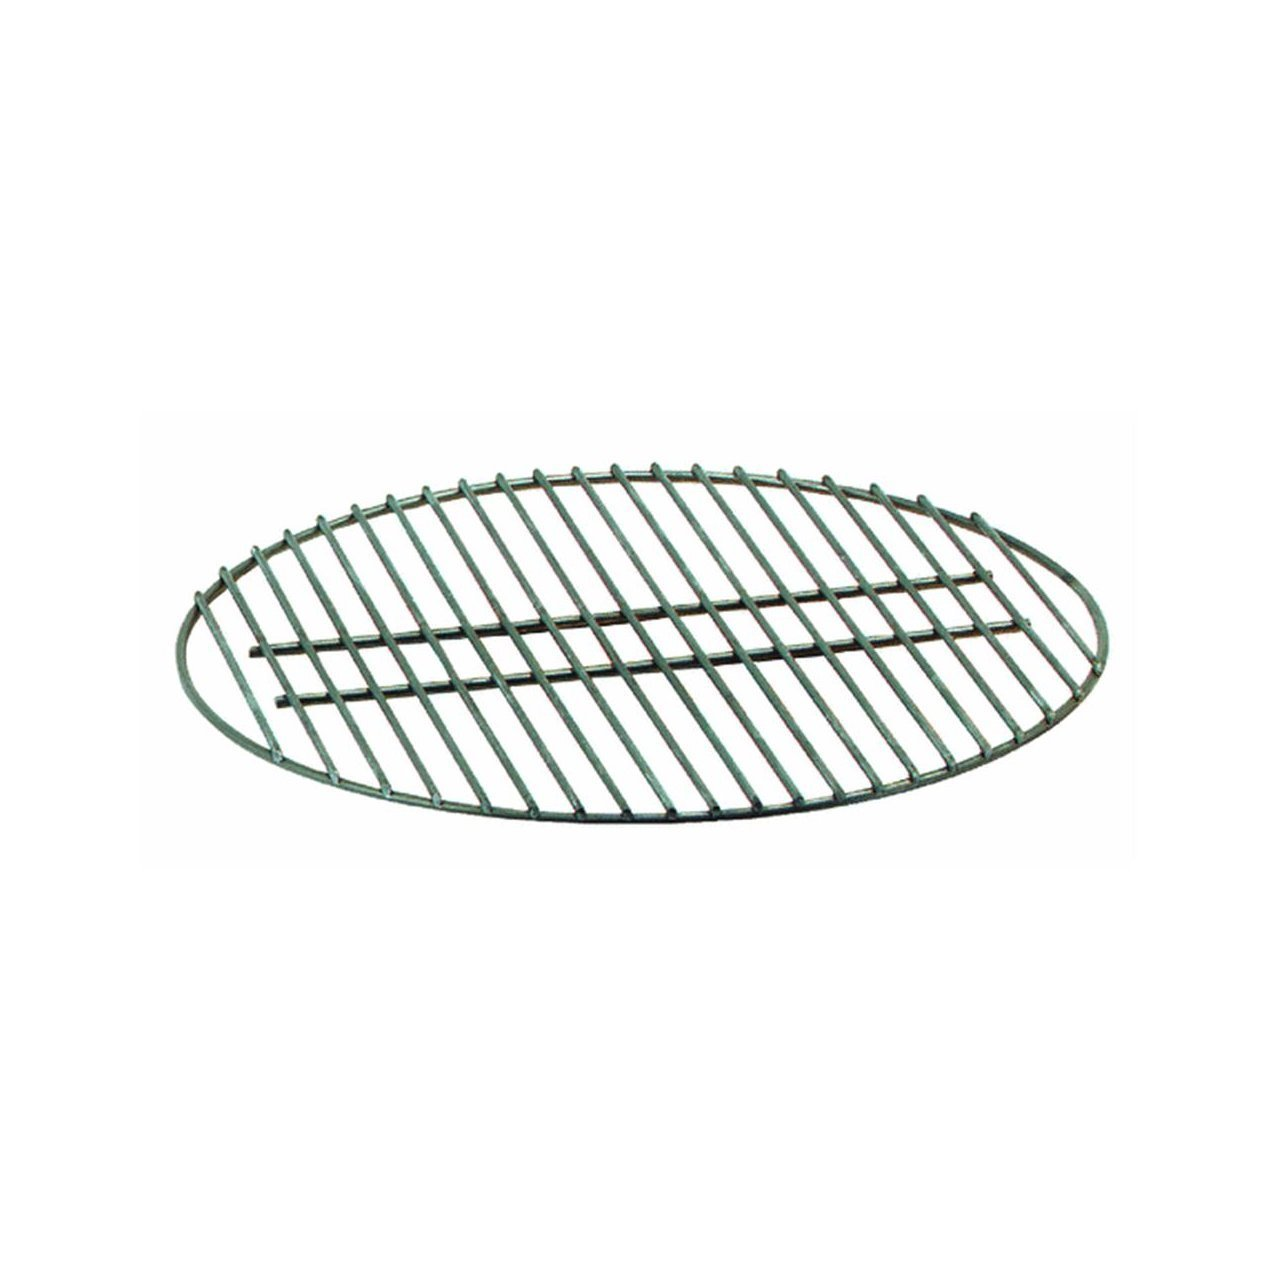 Weber 7441 Replacement Charcoal Grates, 17 inches by Weber